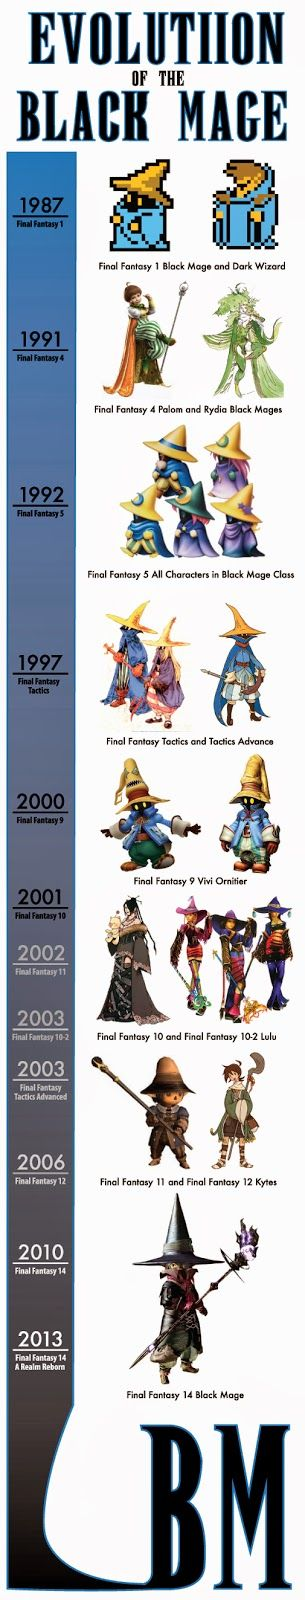 Evolution of the Black Mage from most final fantasies